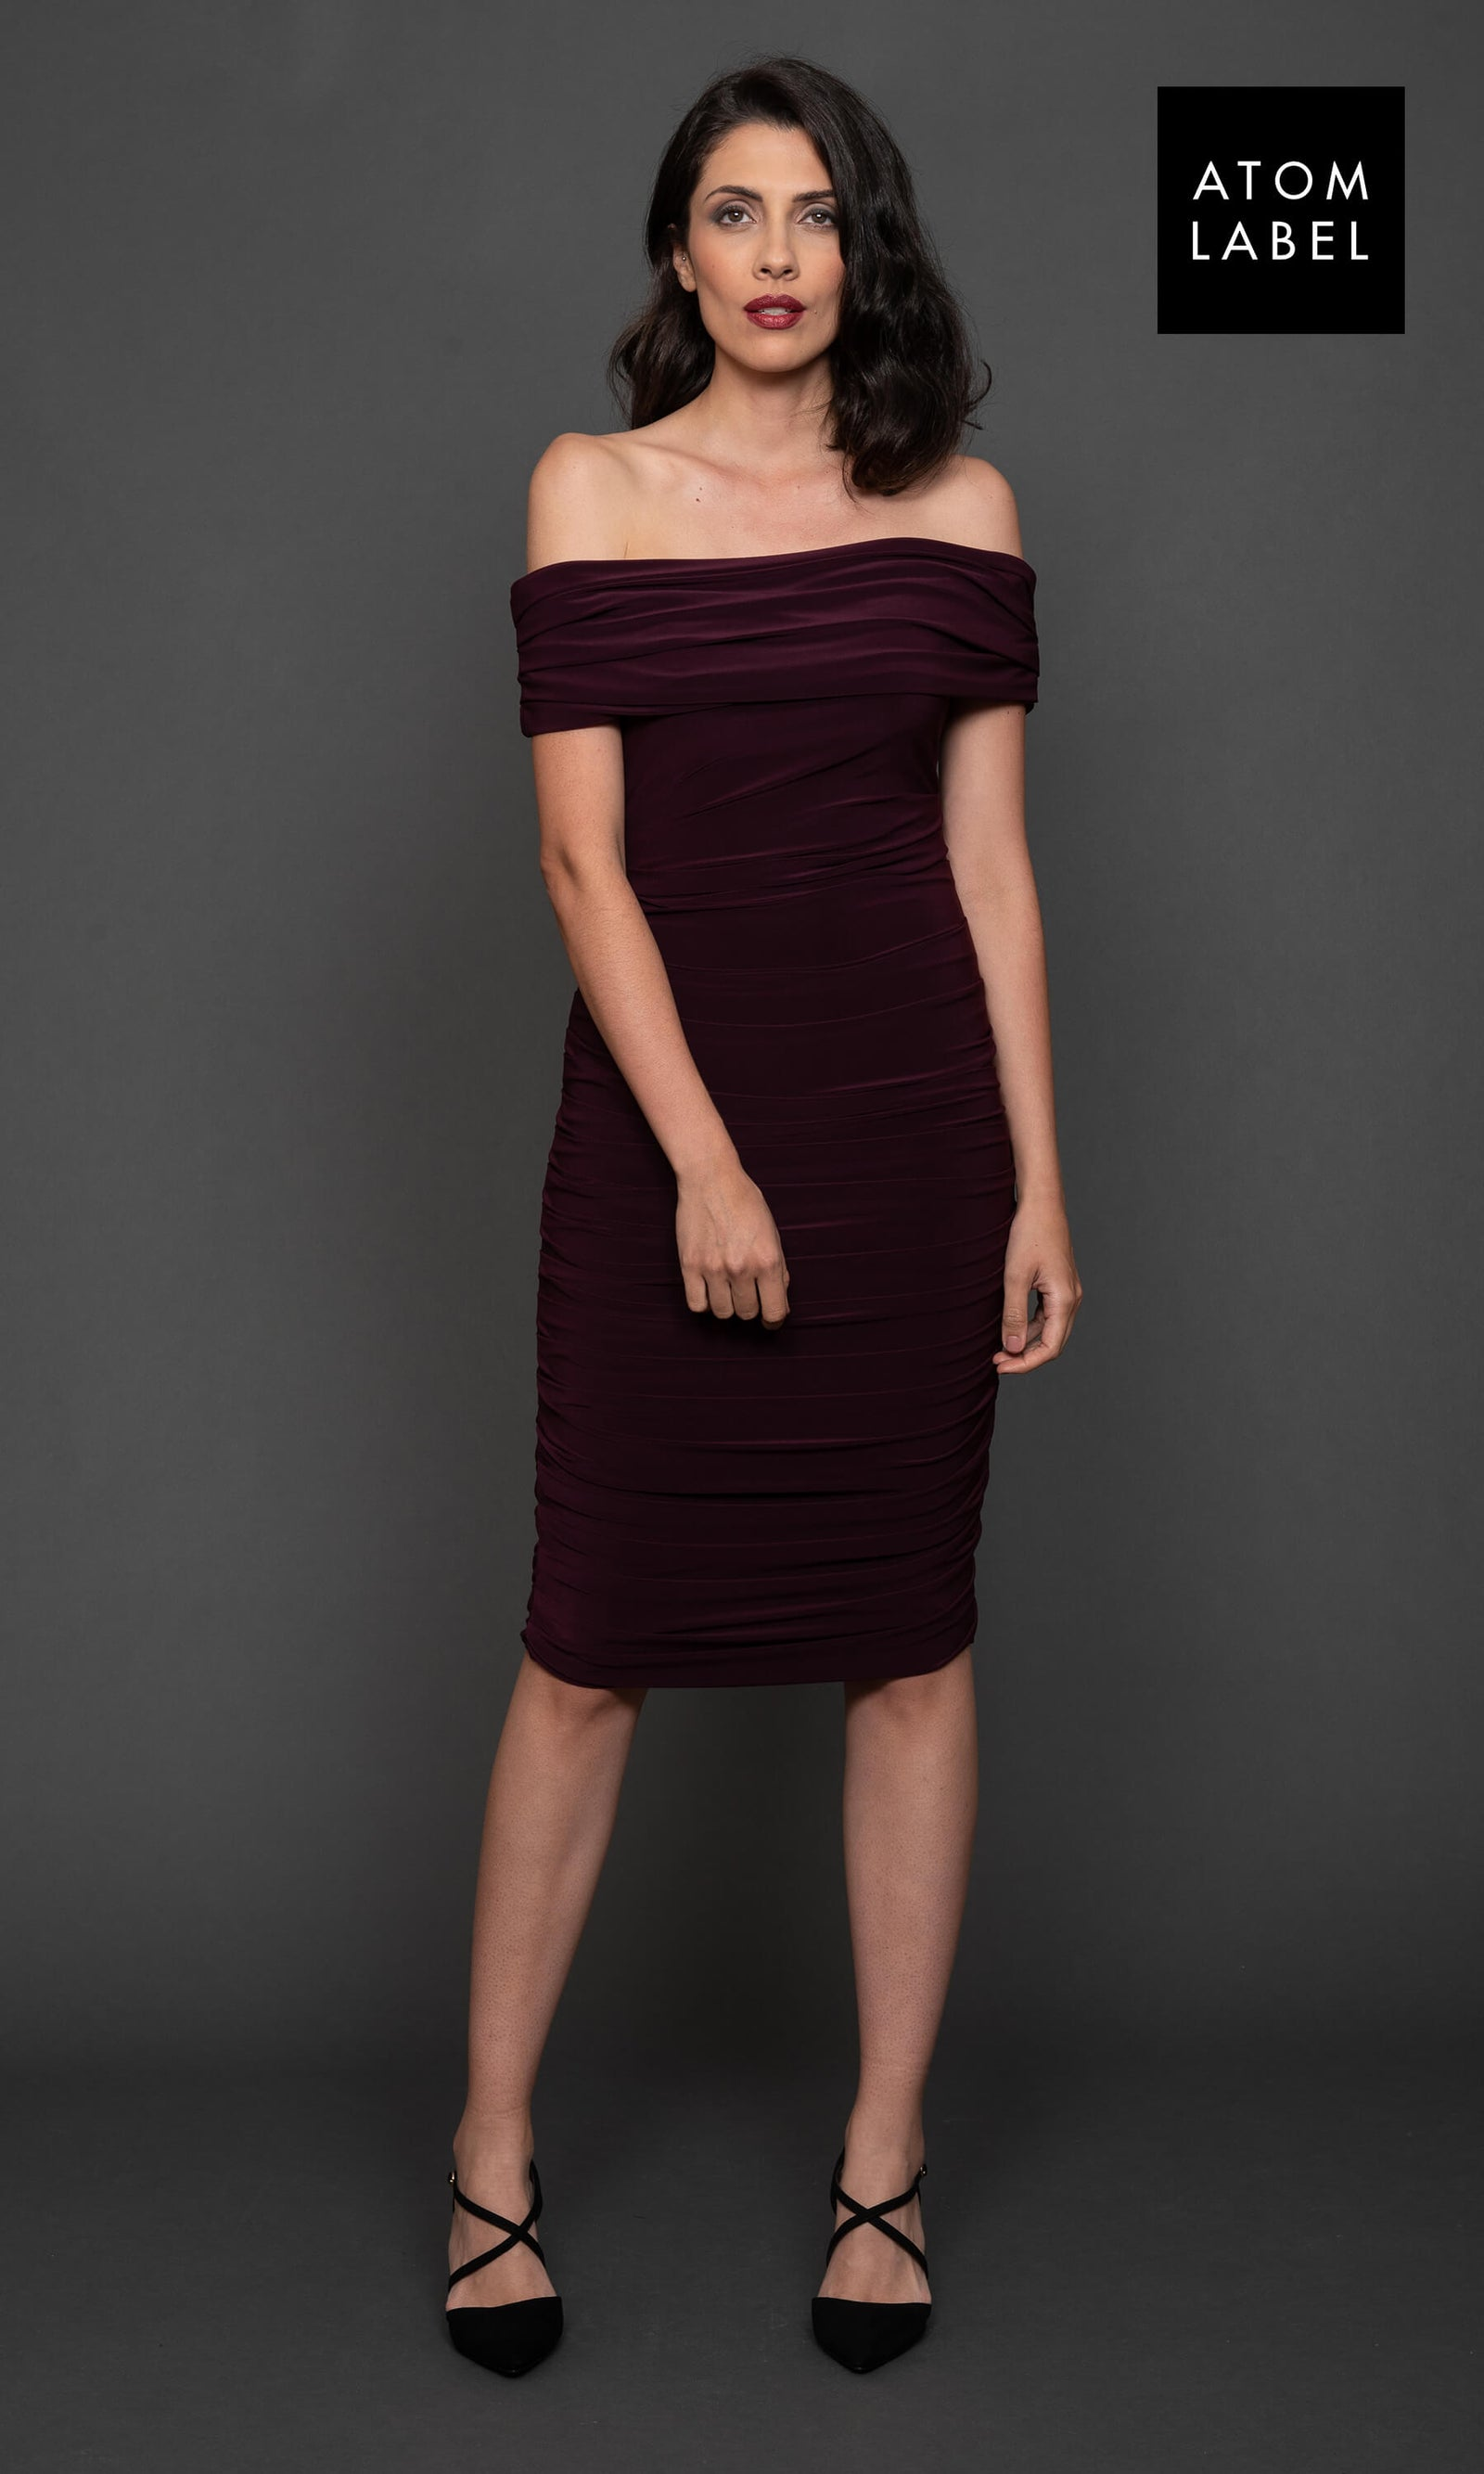 Copper Plum Atom Label Jersey Dress - Fab Frocks